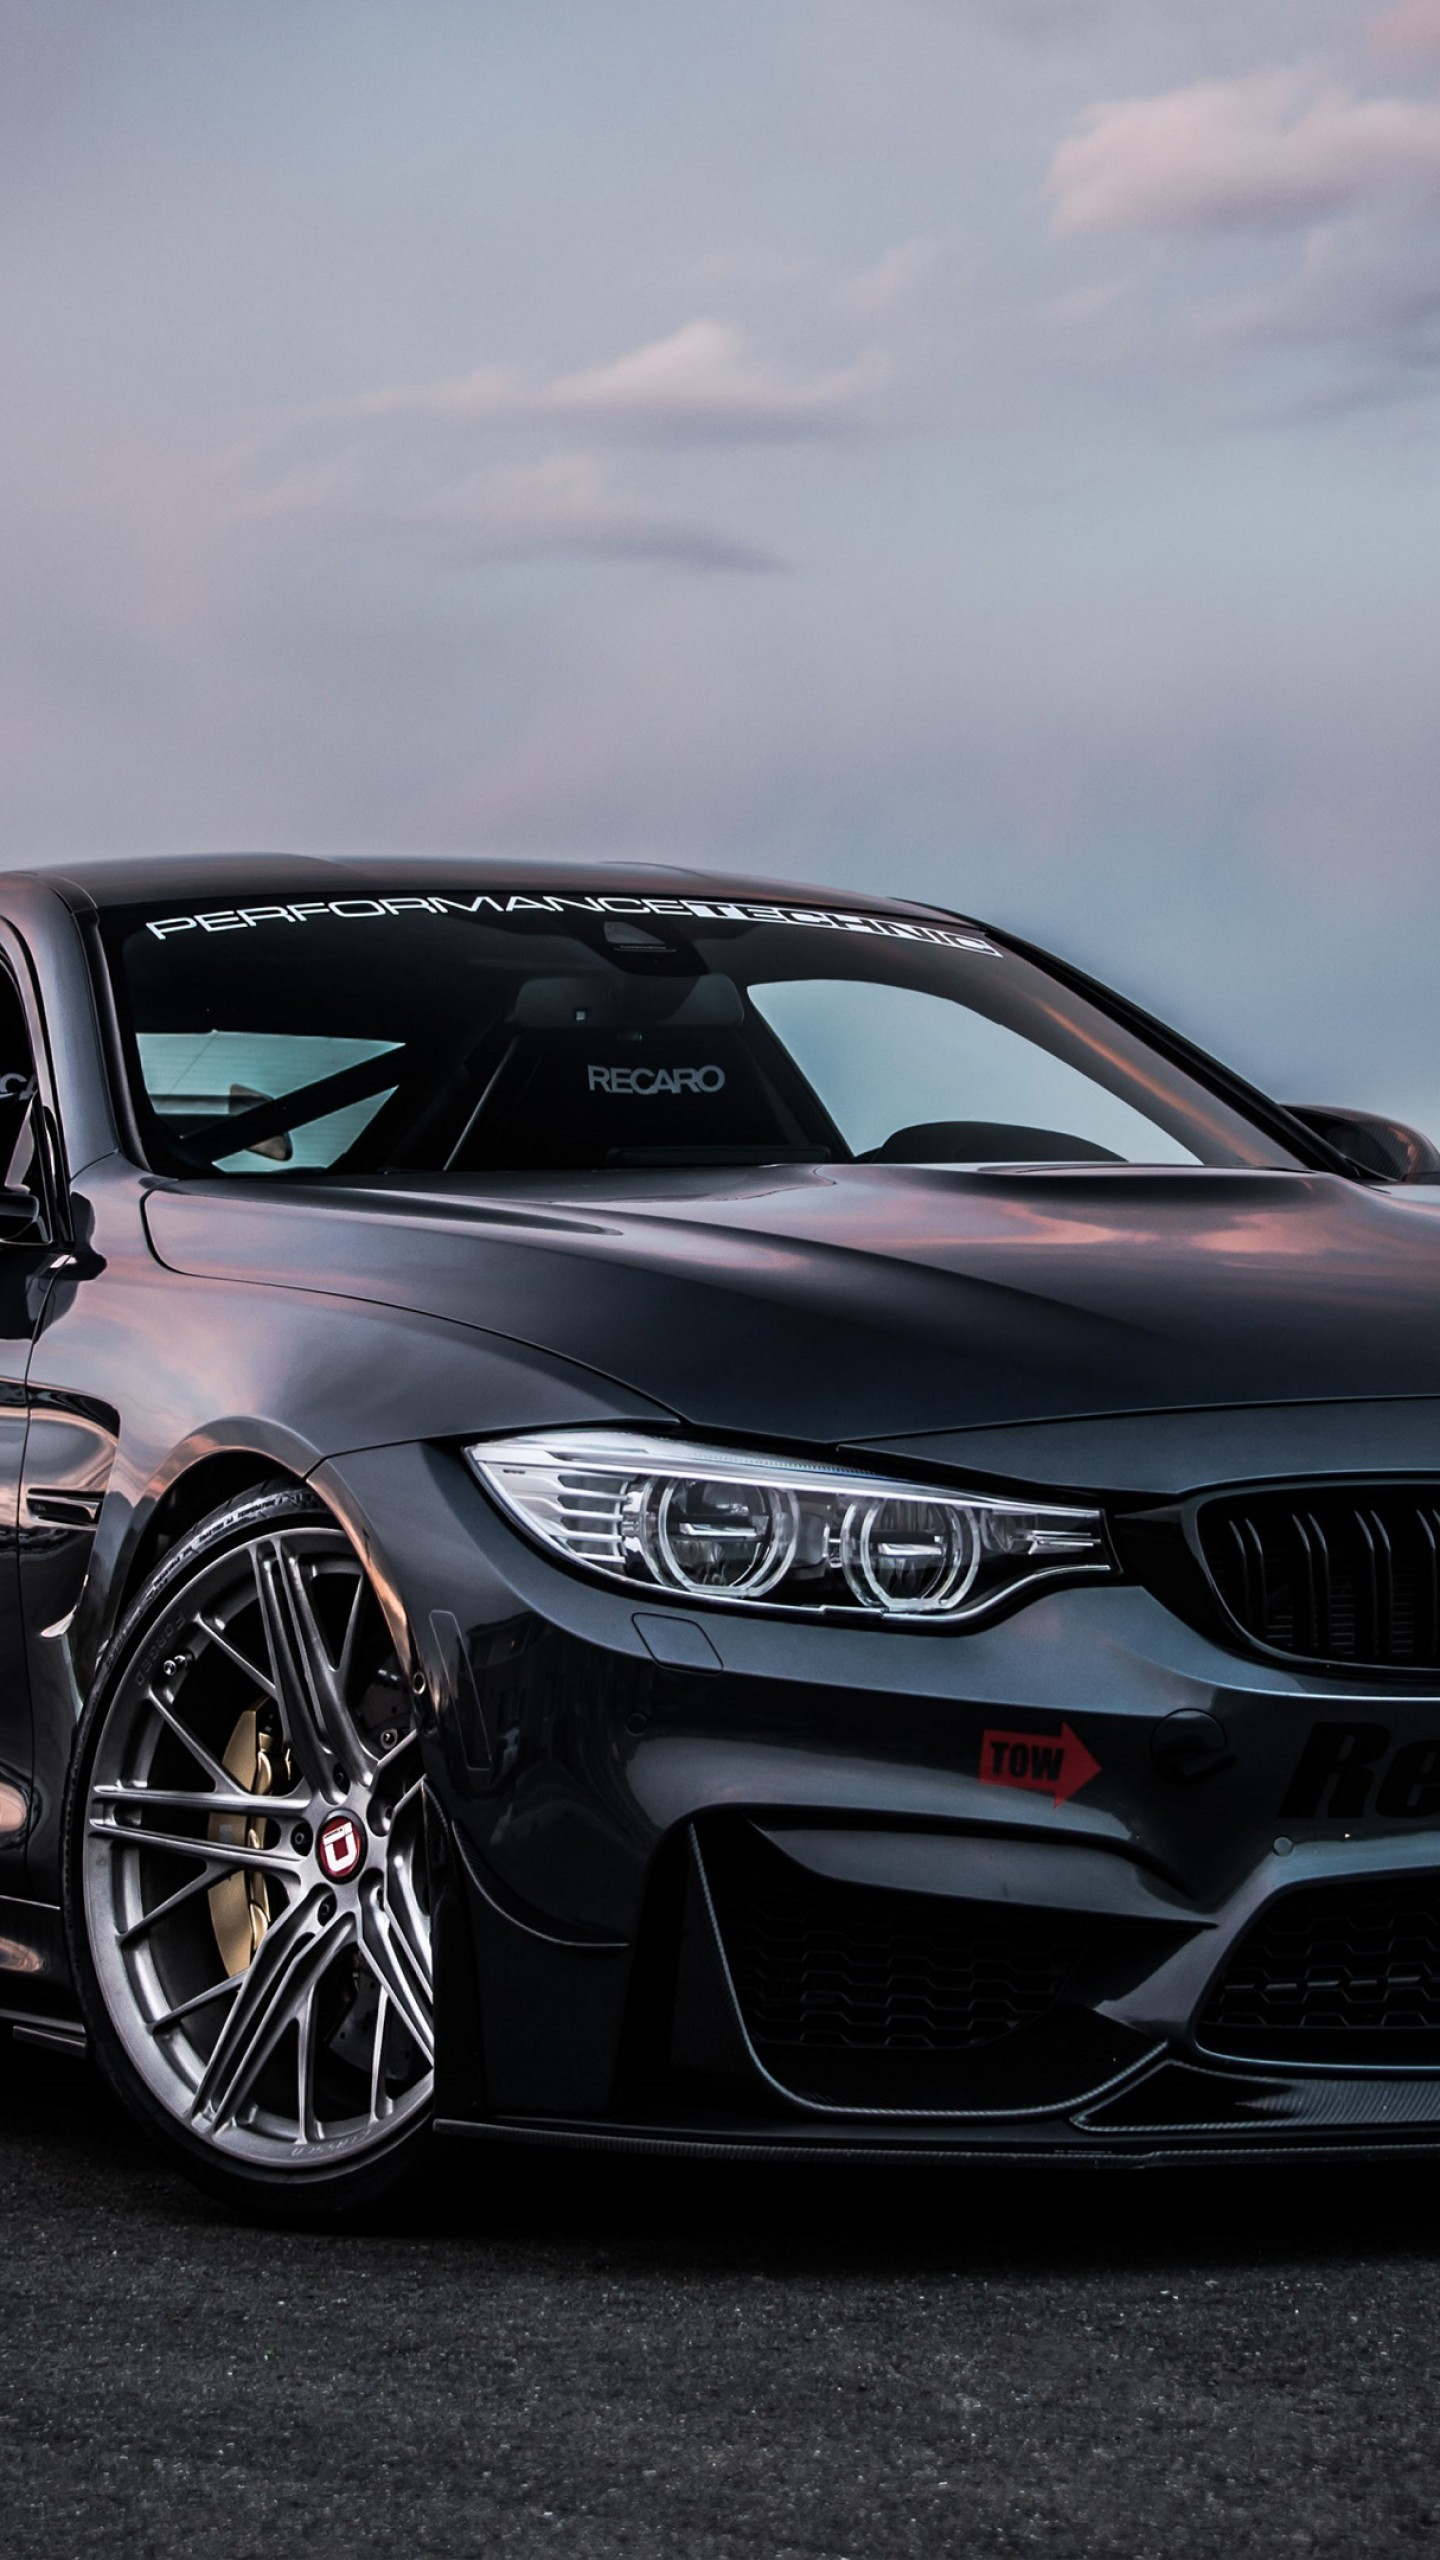 Bmw Wallpaper 4k : wallpaper, Wallpaper, Phone, 1440x2560, Download, WallpaperTip